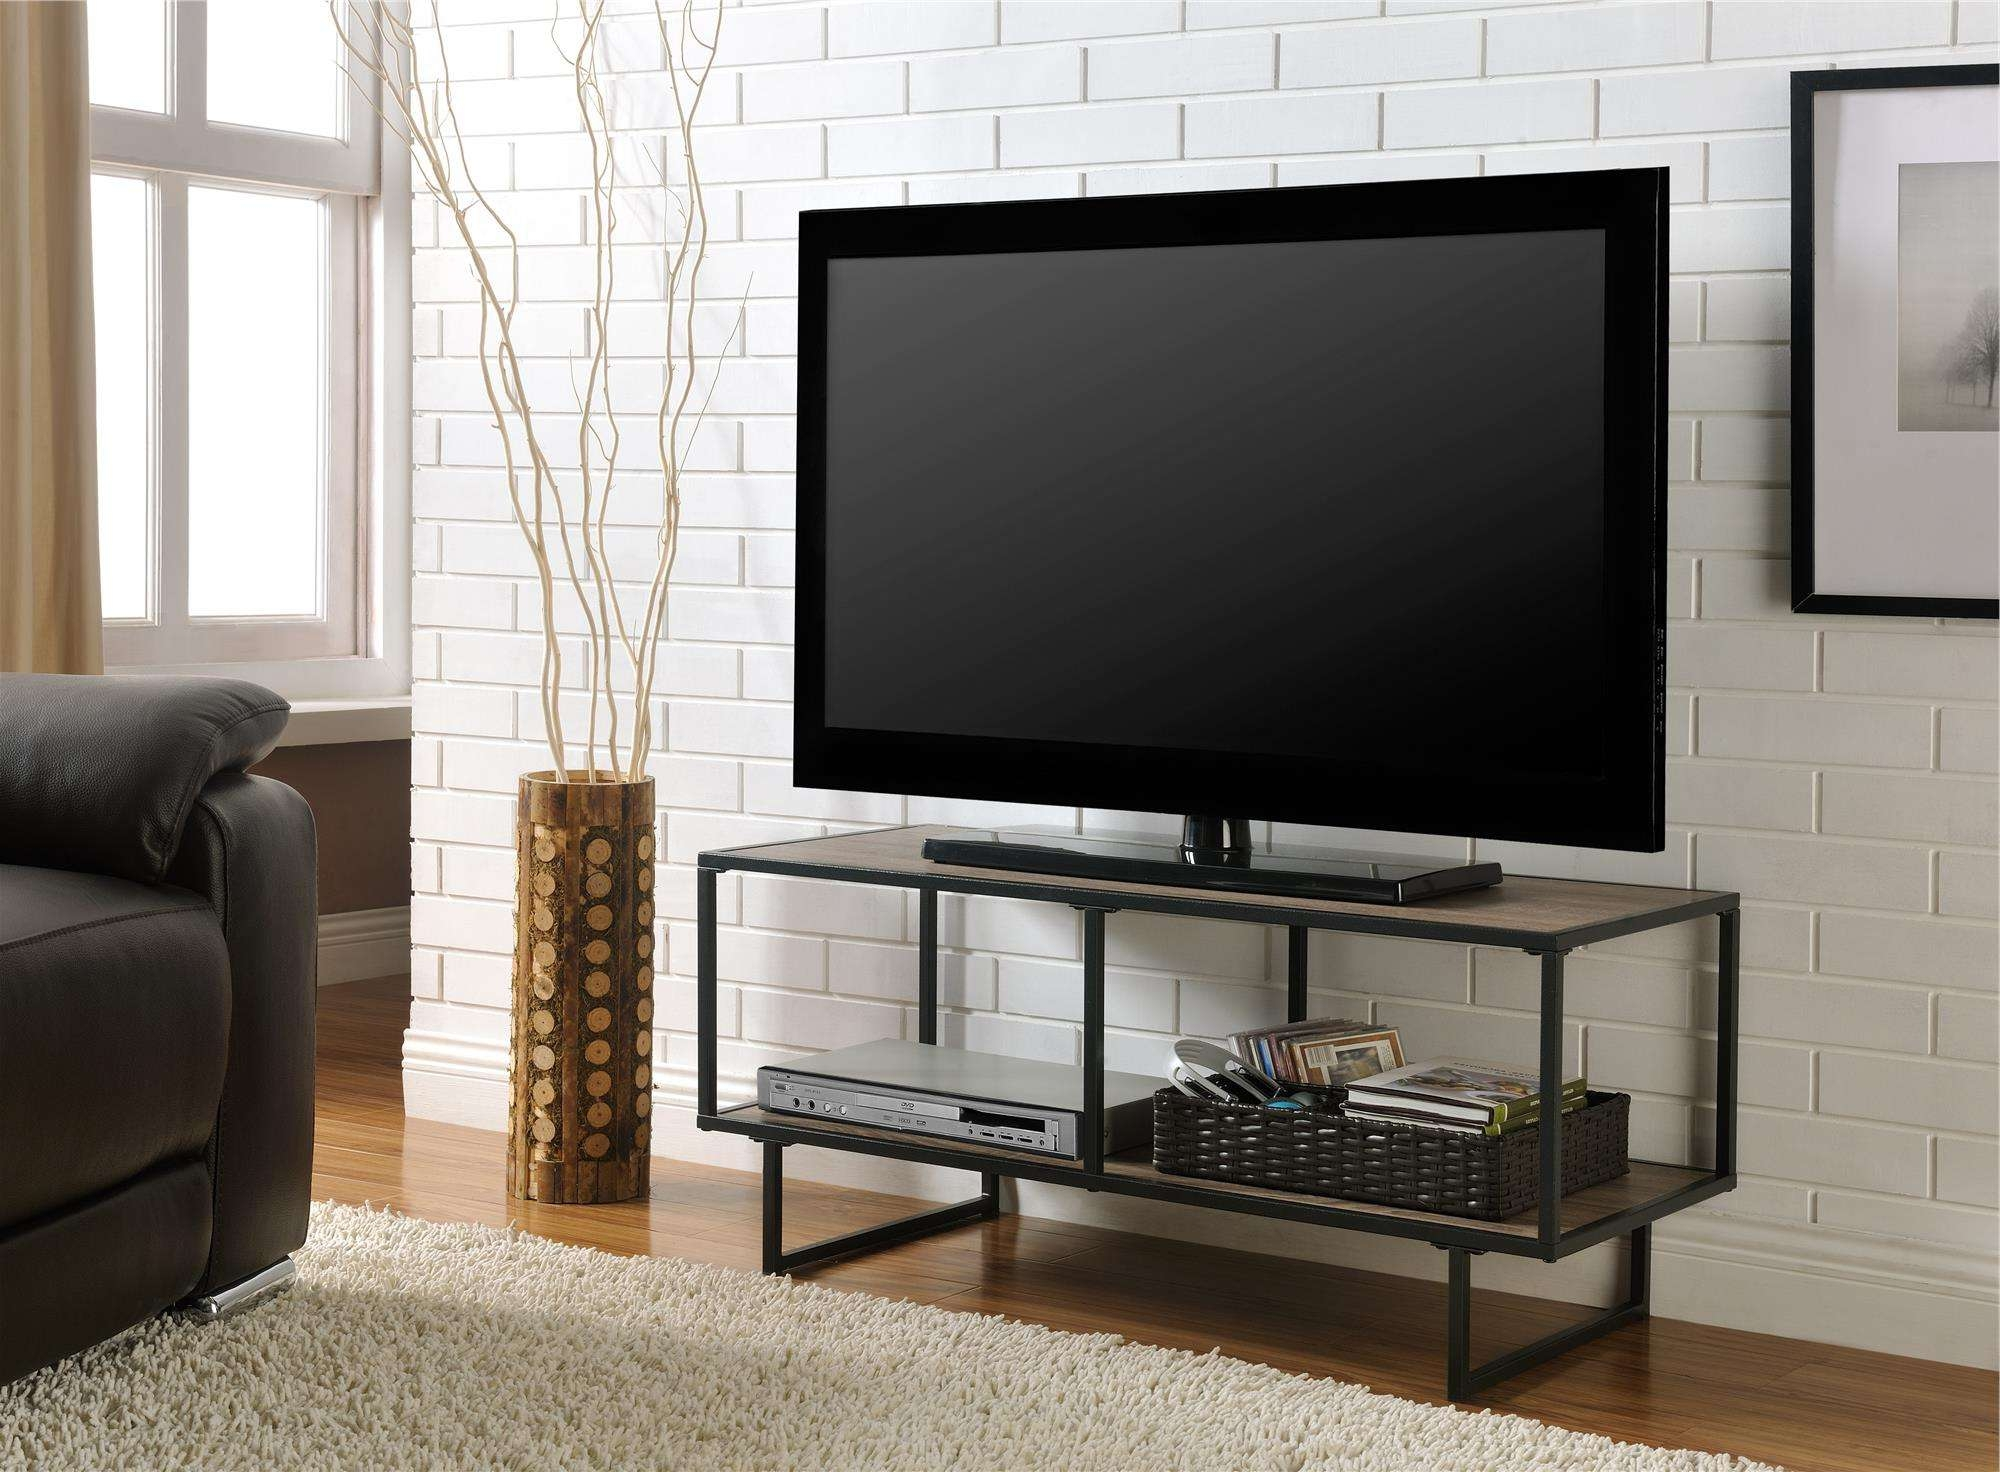 Emmett Tv Stand/coffee Table For Tvs Up To Throughout Newest Tv Stand Coffee Table Sets (Gallery 19 of 20)